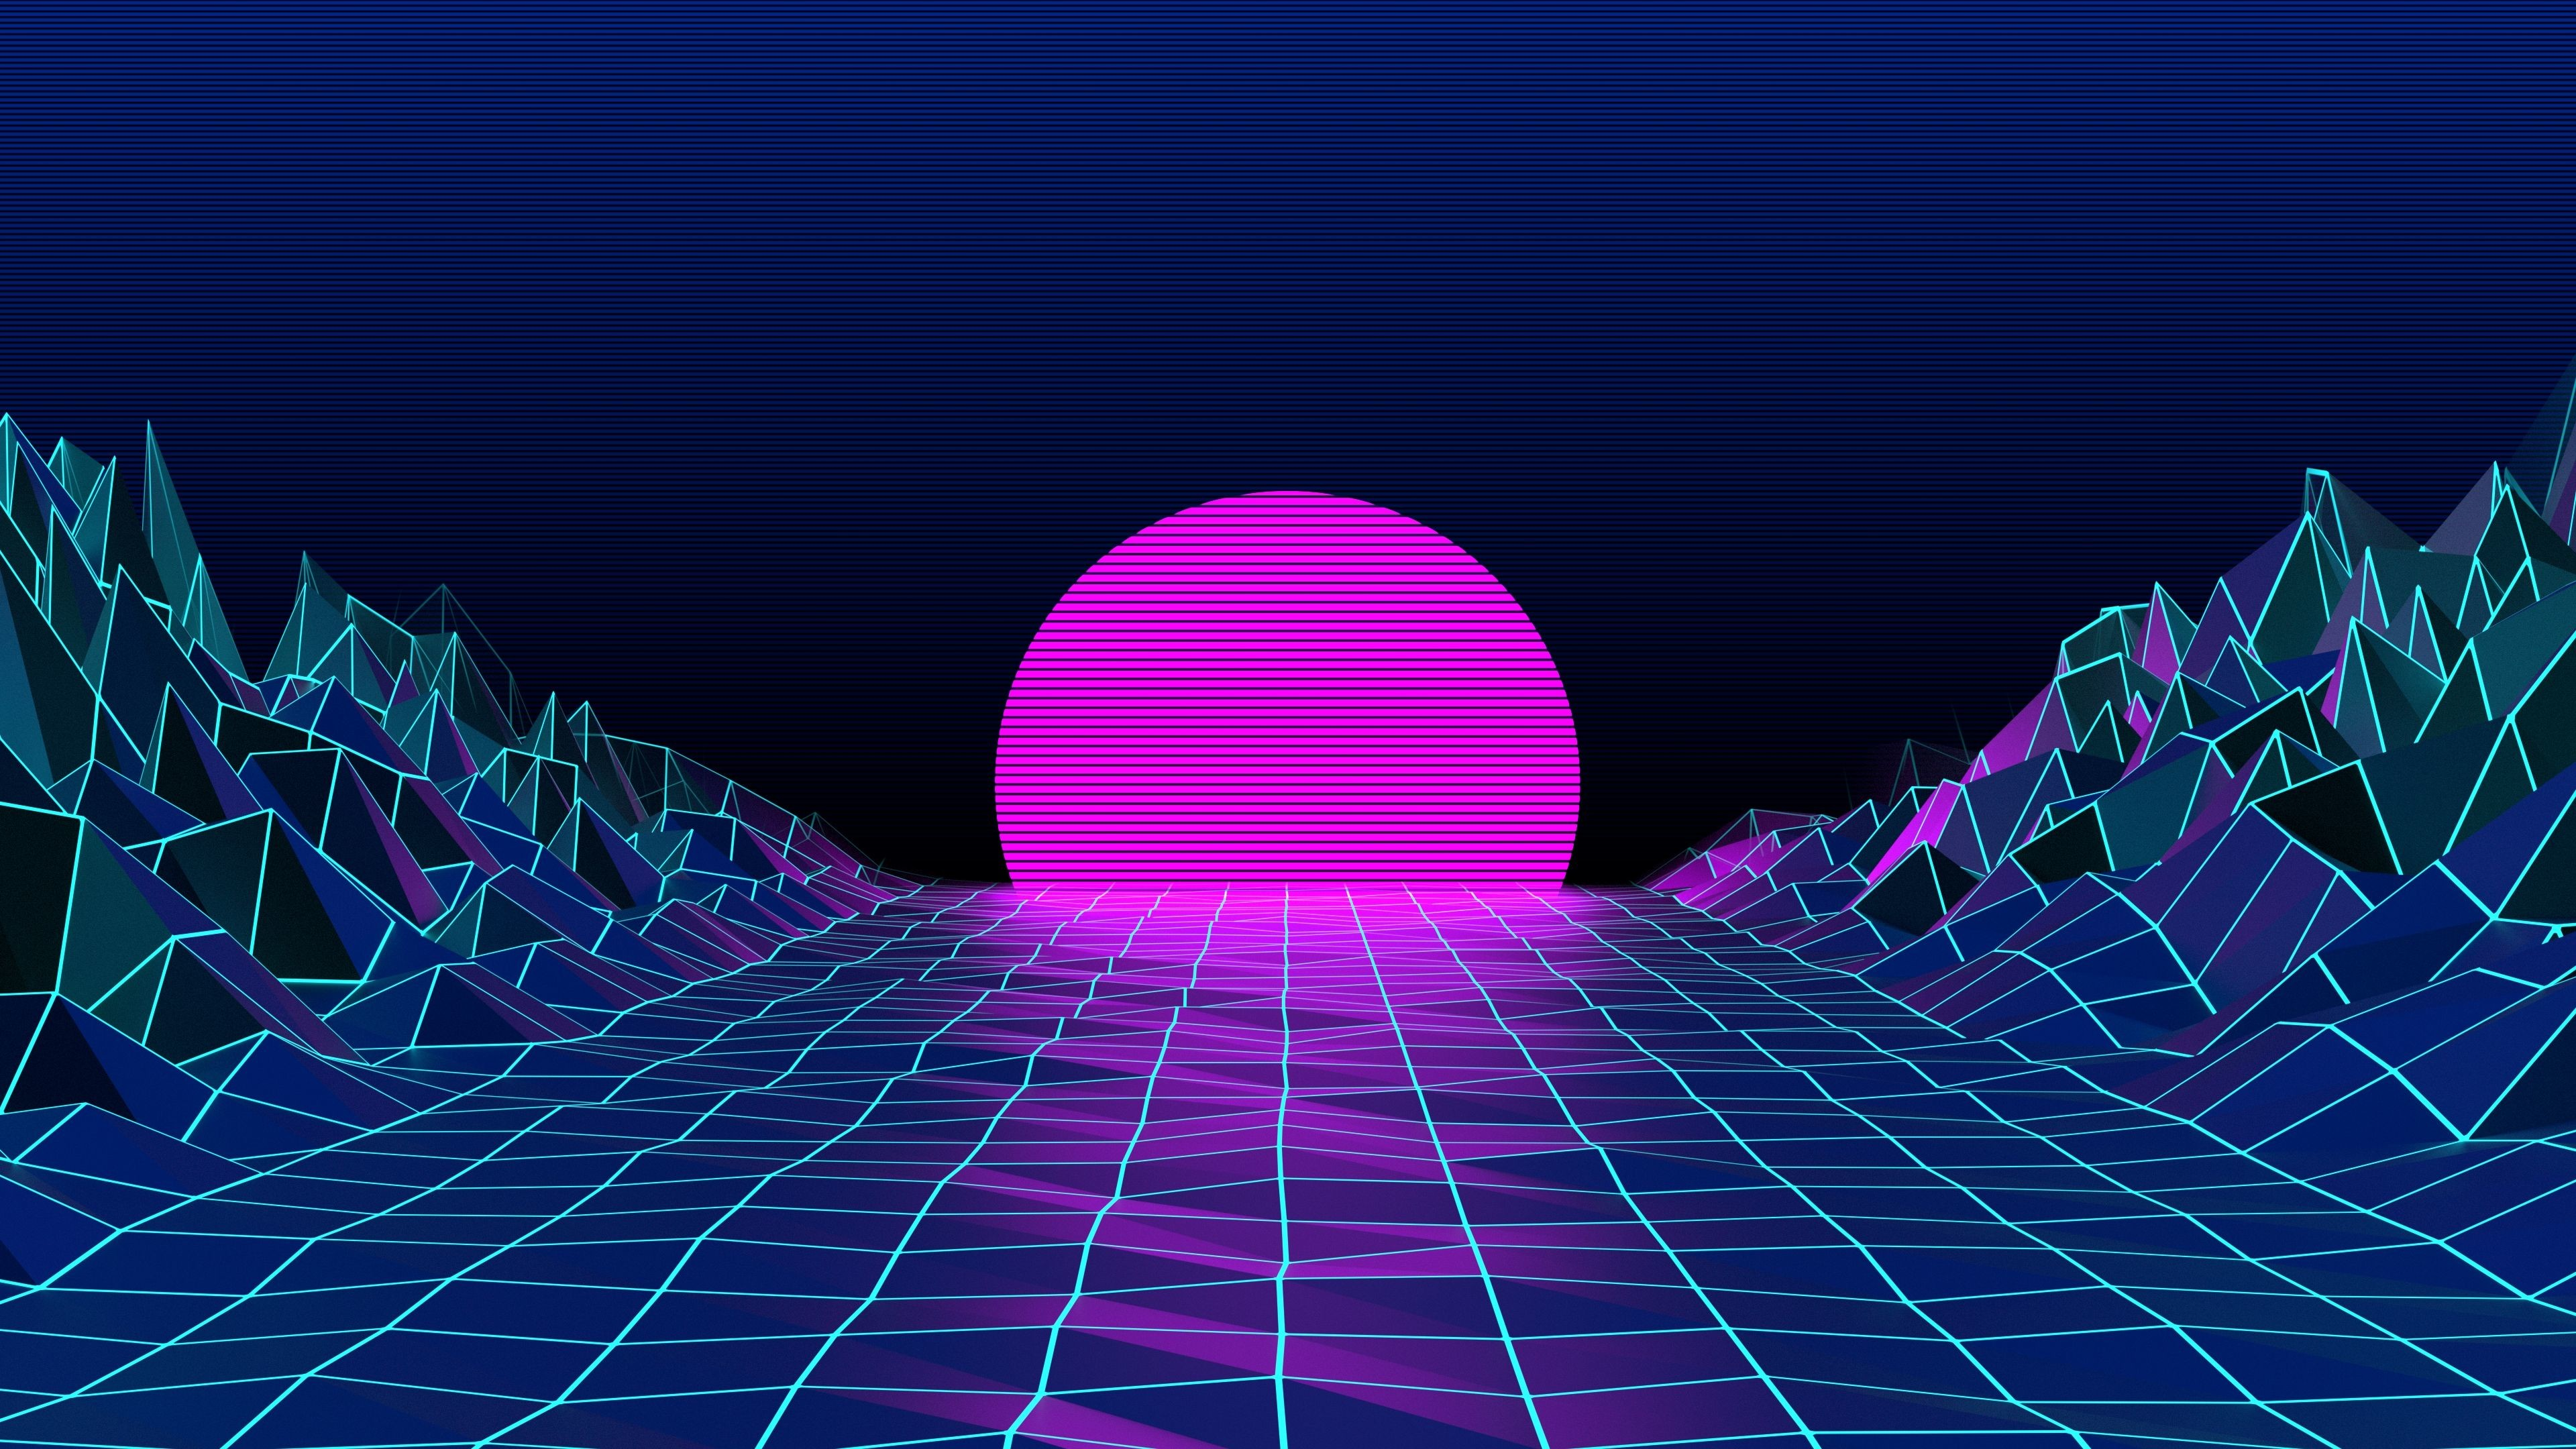 Res: 3840x2160, [] [1920x1080] Retro 80's wallpaper /r/wallpapers